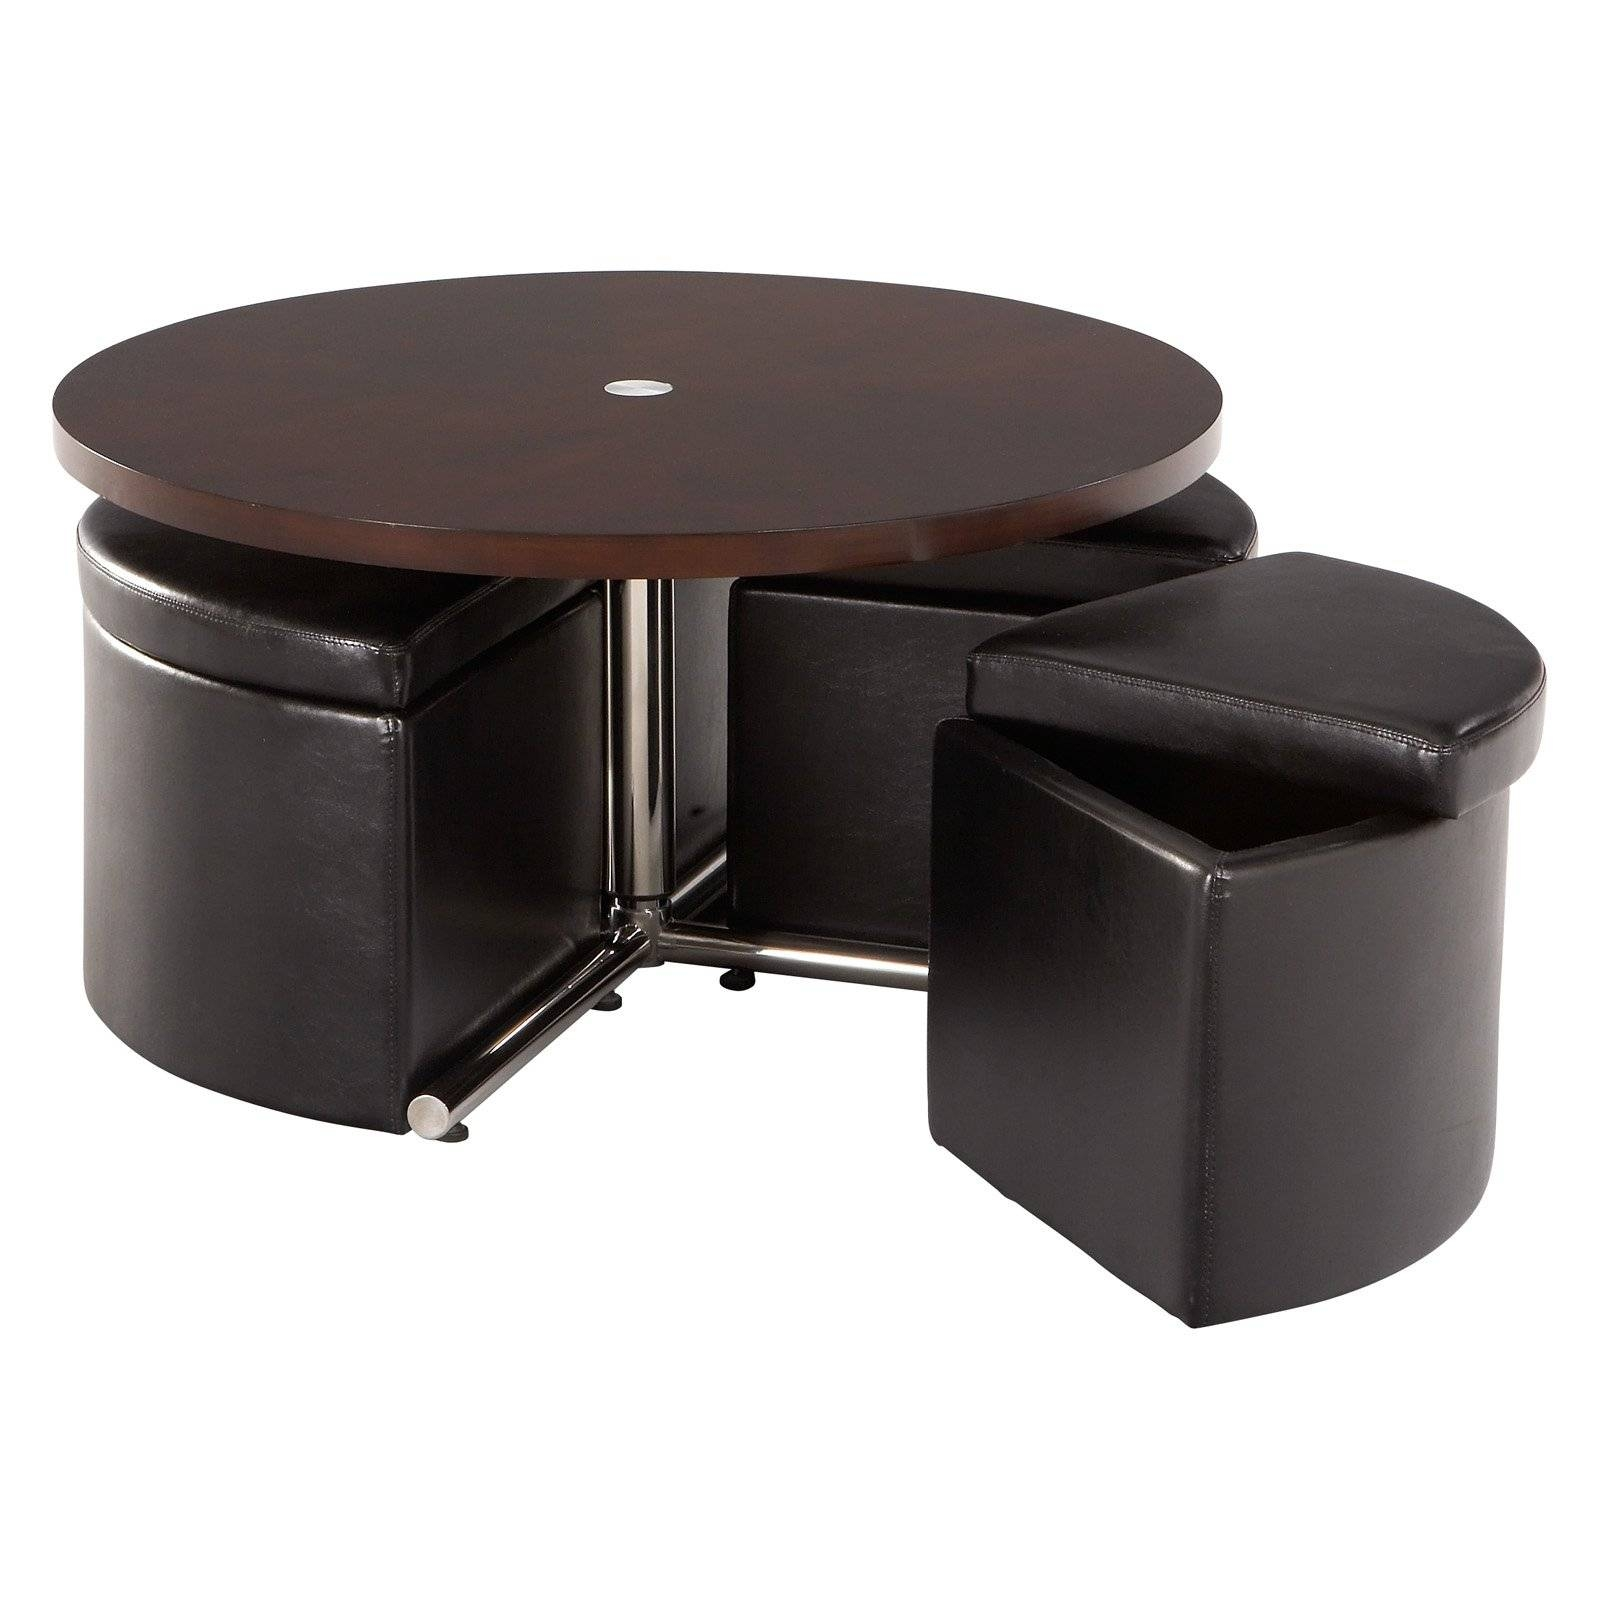 Coffee Table: Astonishing Round Coffee Table With Storage Designs throughout Round Coffee Tables With Storages (Image 8 of 30)